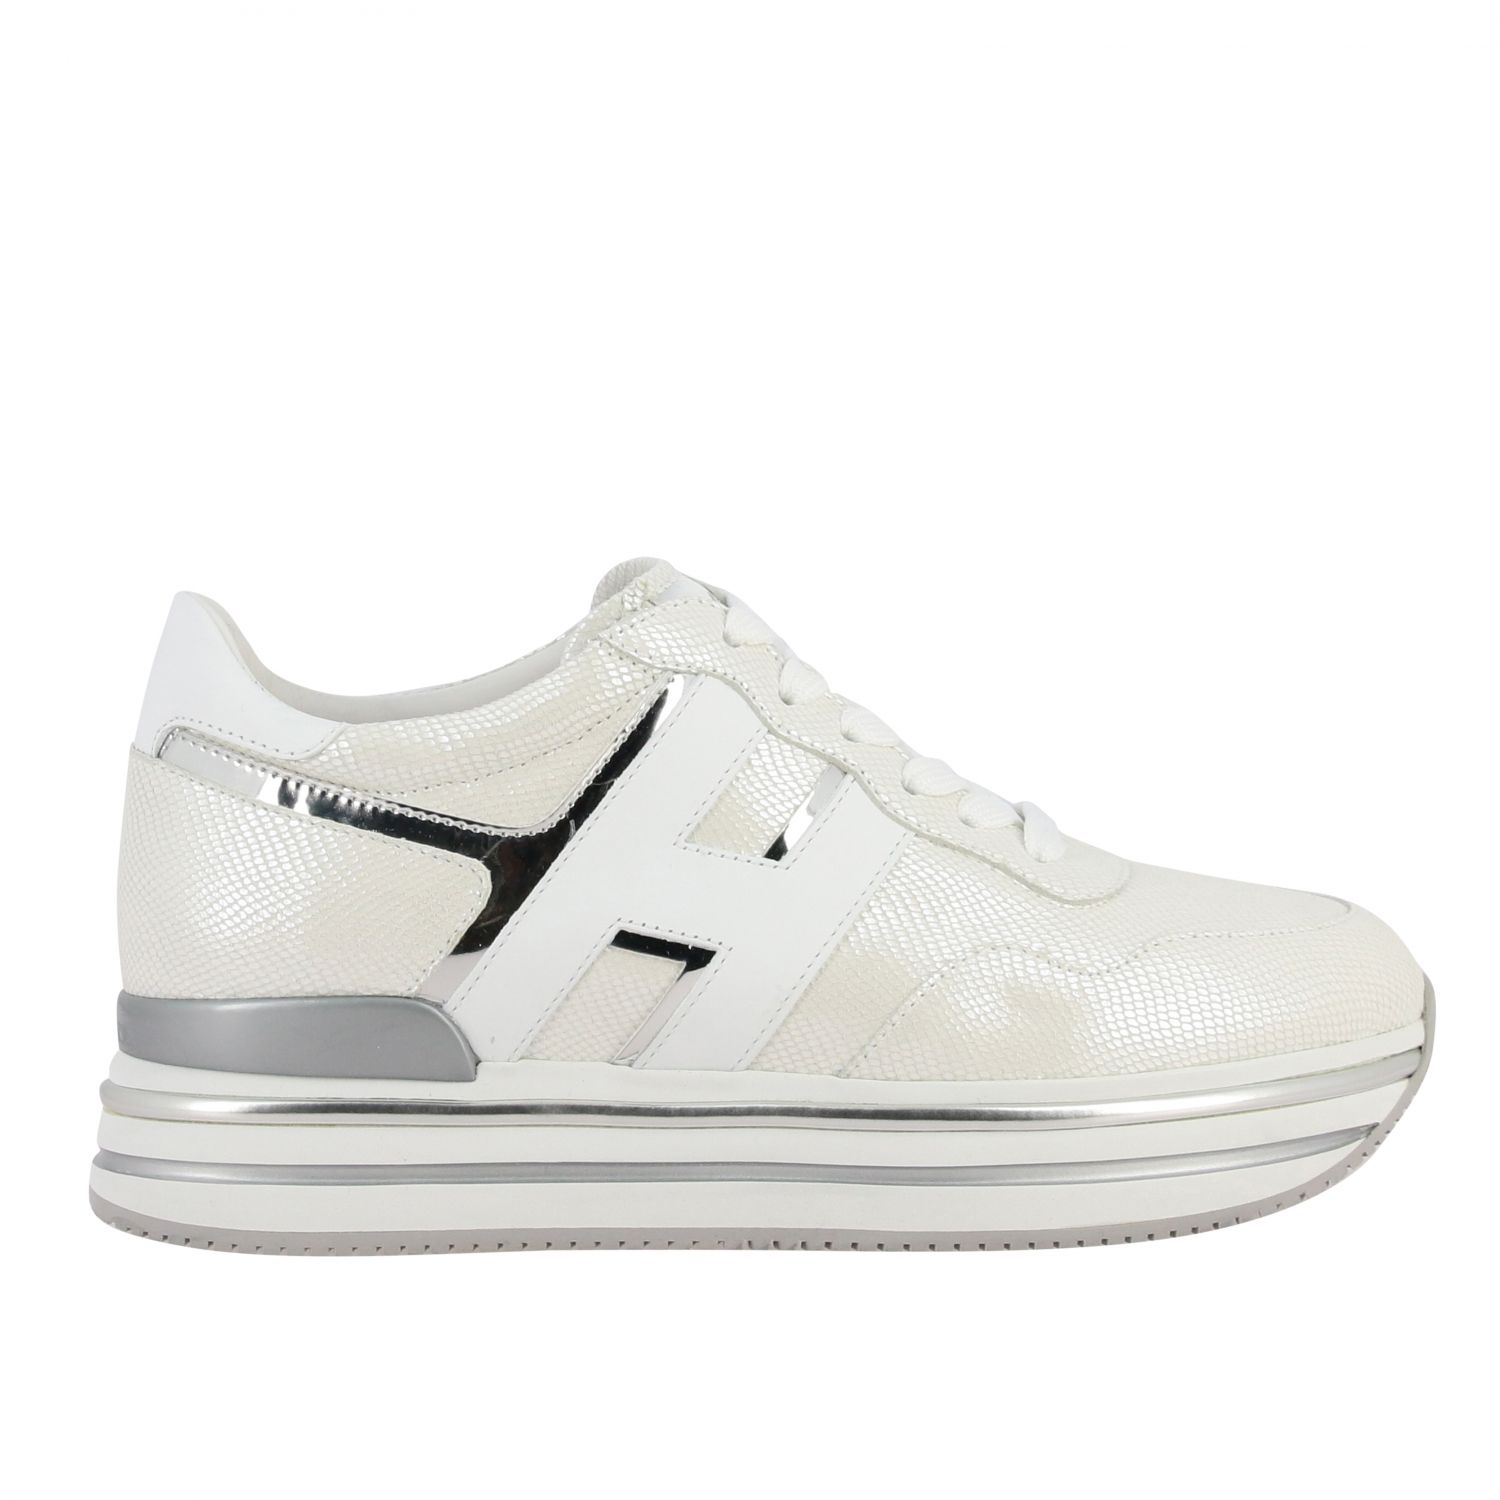 Hogan 468 midi platform sneakers in leather with big H and glitter piping white 1